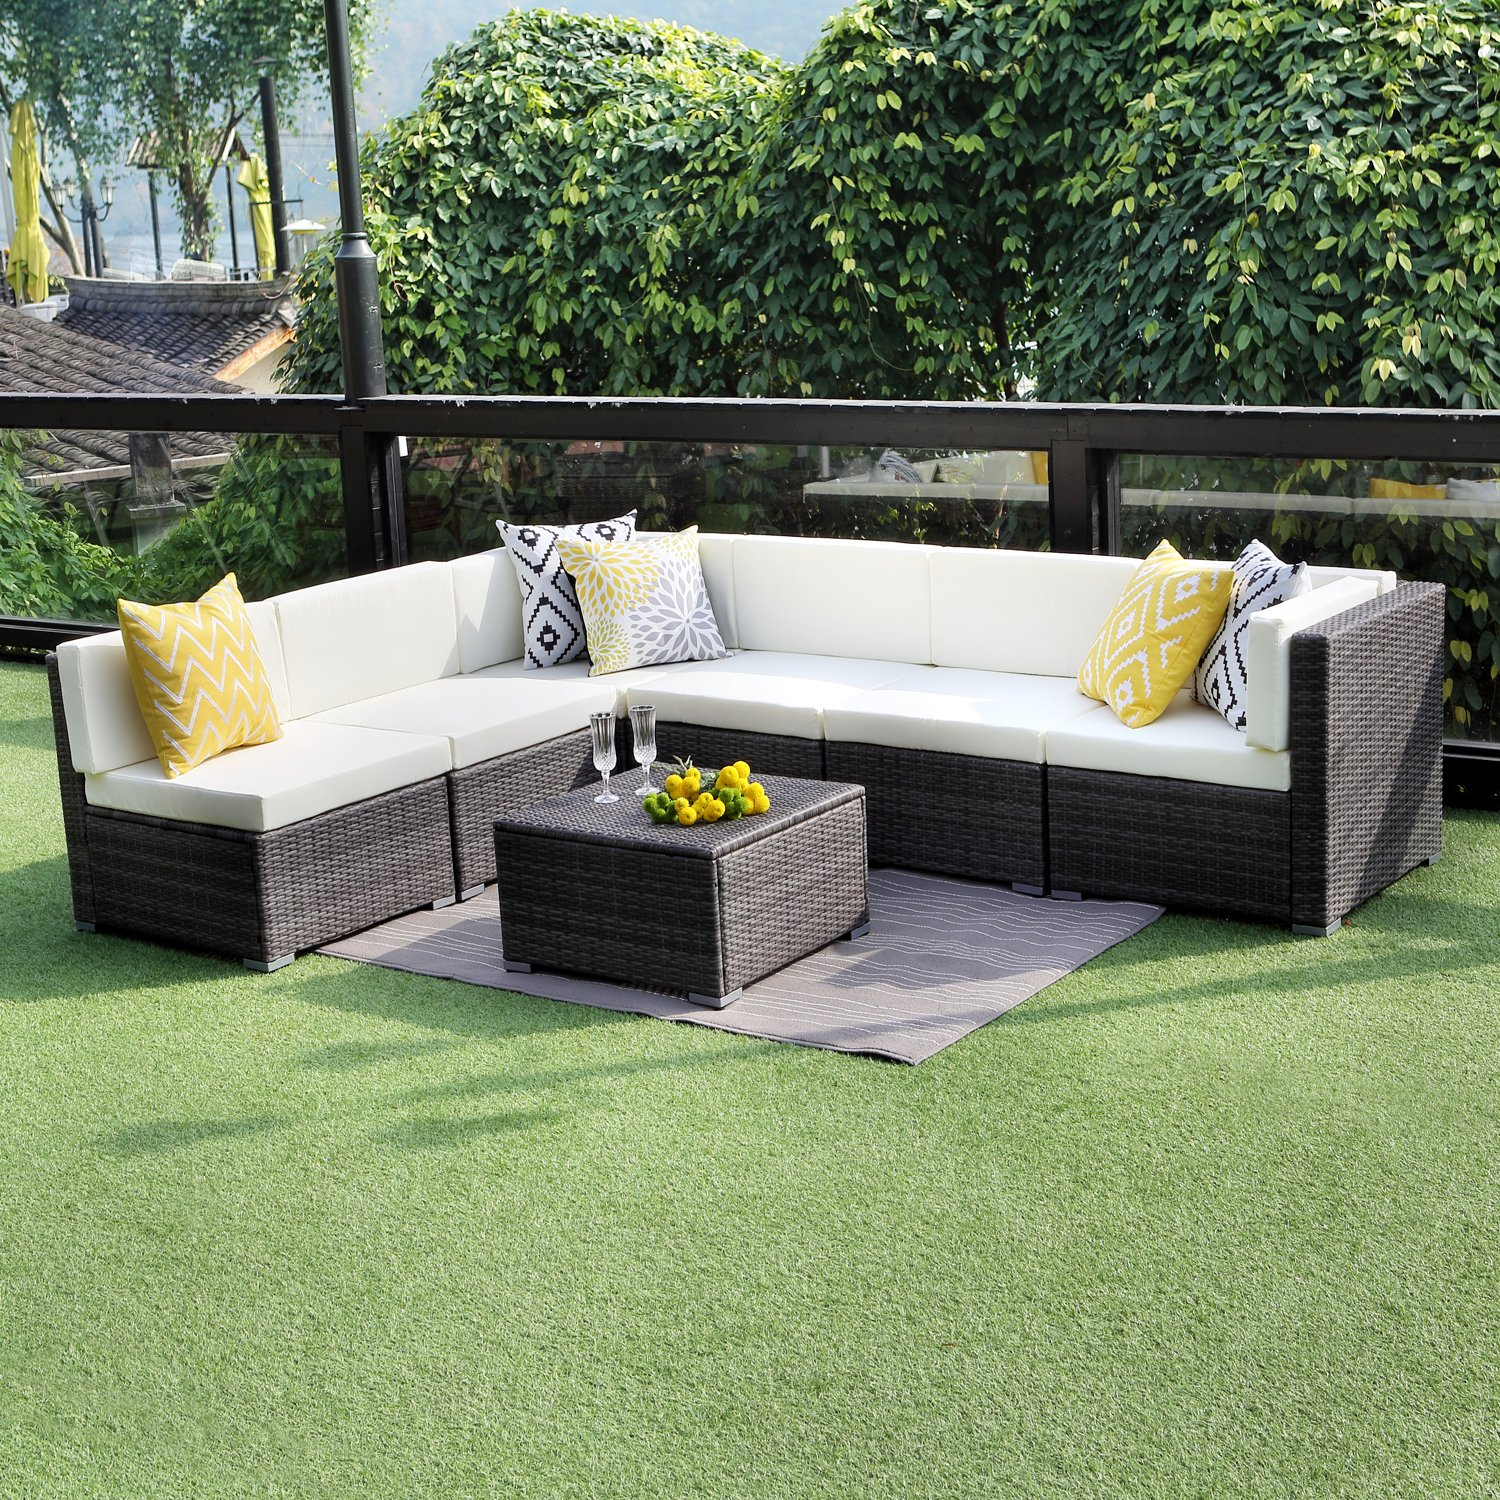 Outdoor Conversation Set Patio Furniture, 7PCS Outdoor Gray Wicker Sofa Set Sectional Furniture Set by Wisteria Lane